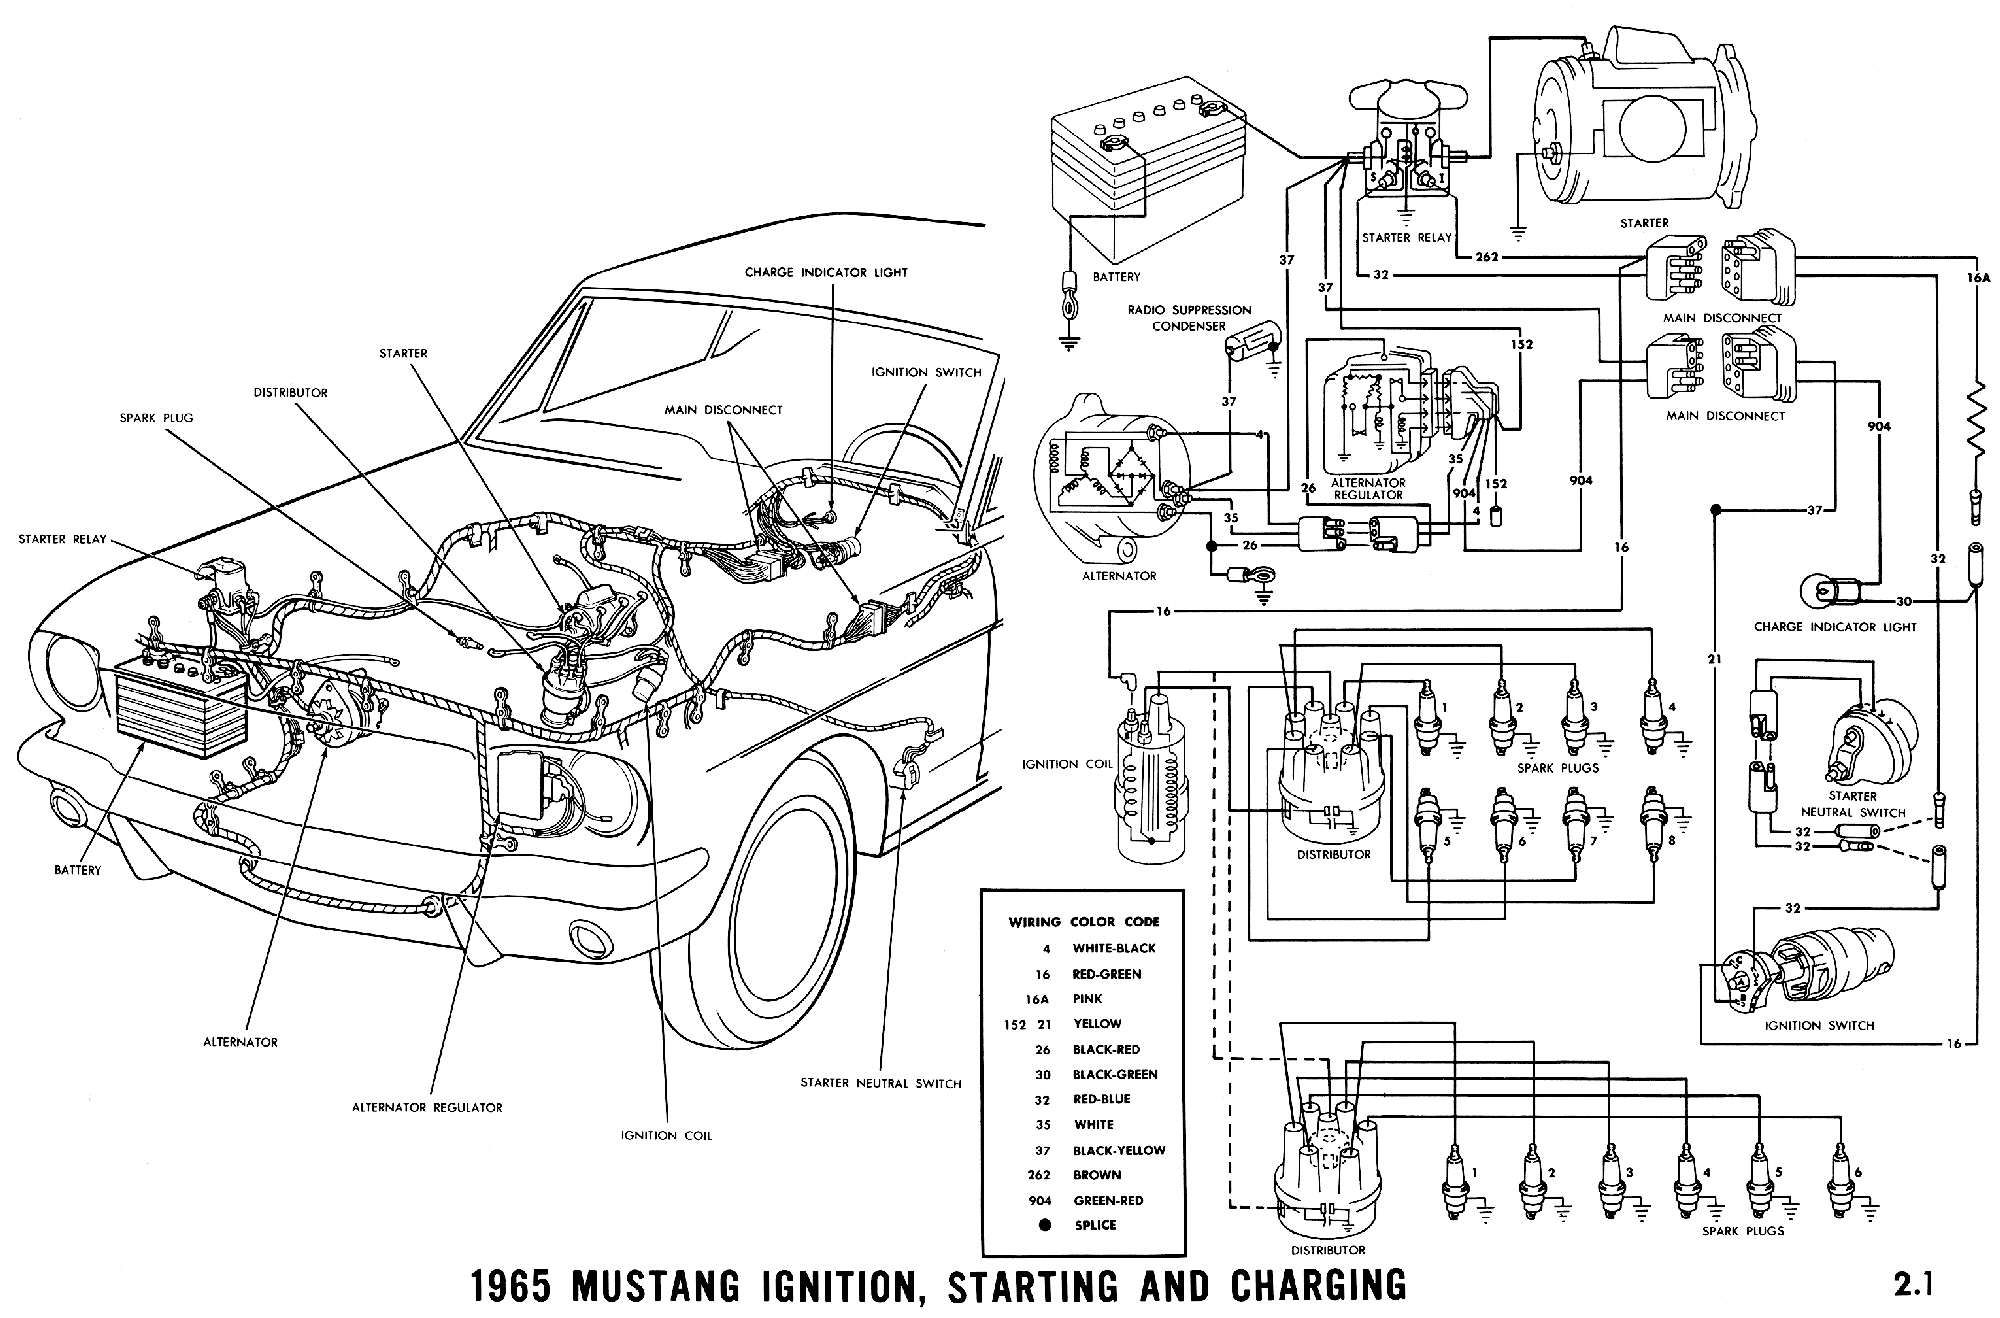 2b4c8d3809962afcbebfb7e8a60704ce 1965 mustang wiring diagrams average joe restoration mustang 1972 mustang wiring schematic at bakdesigns.co